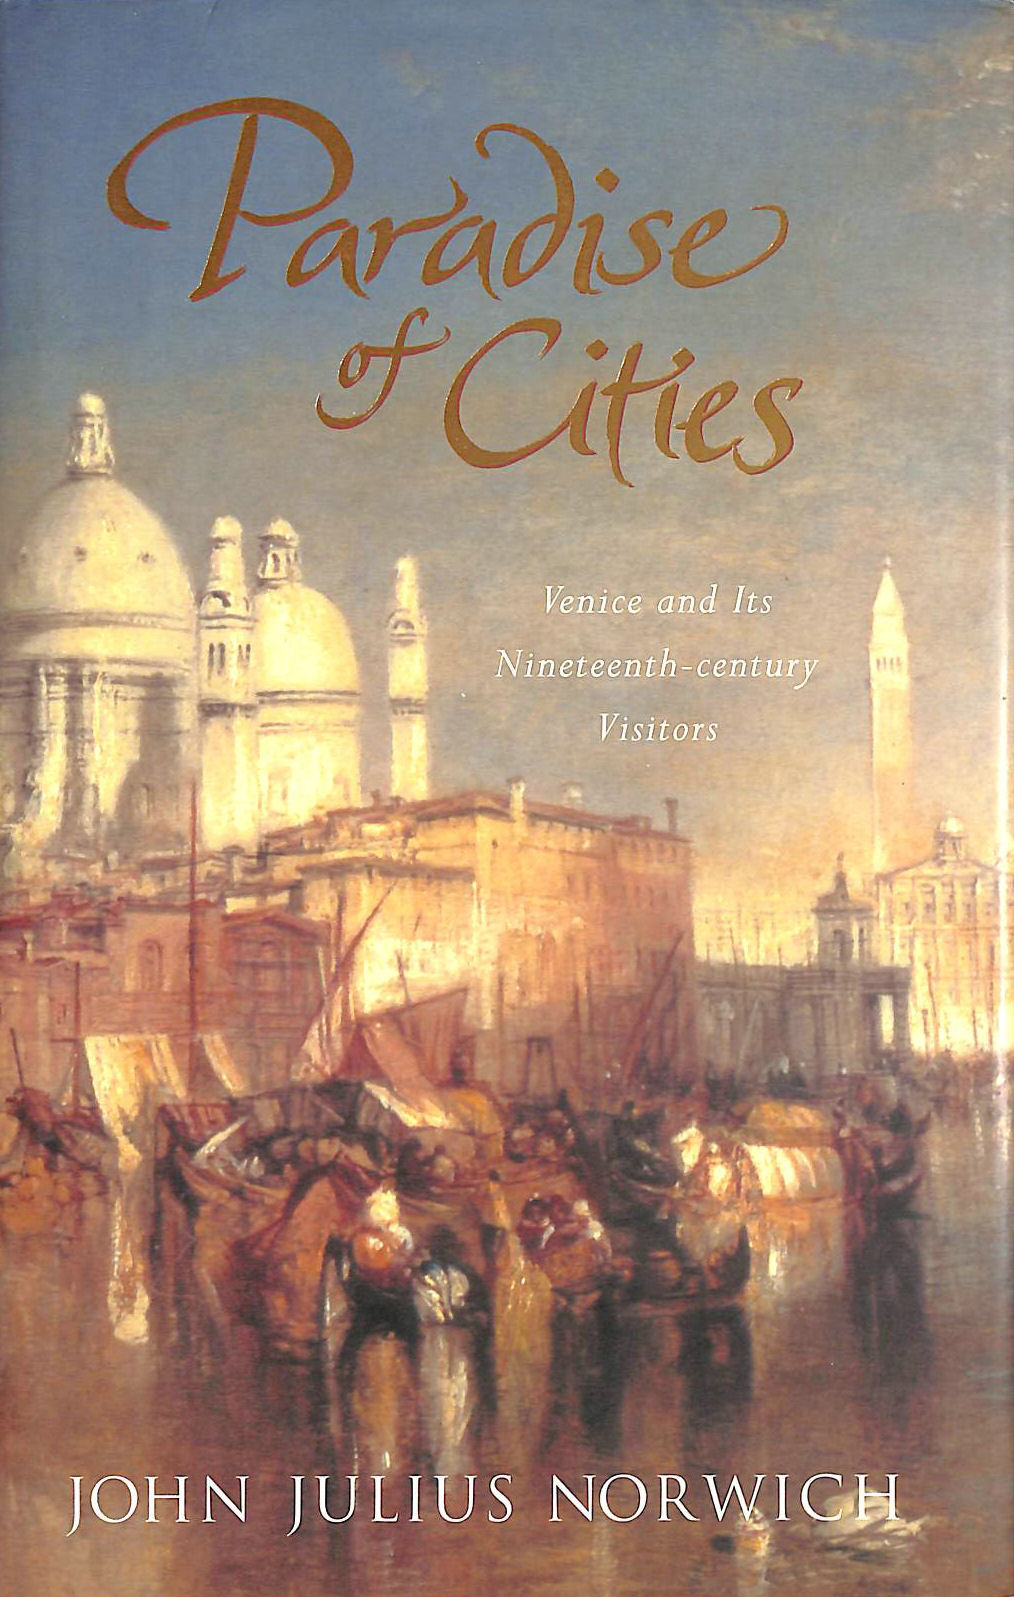 NORWICH, JOHN JULIUS - Paradise of Cities: Venice And Its Nineteenth-Century Visitors